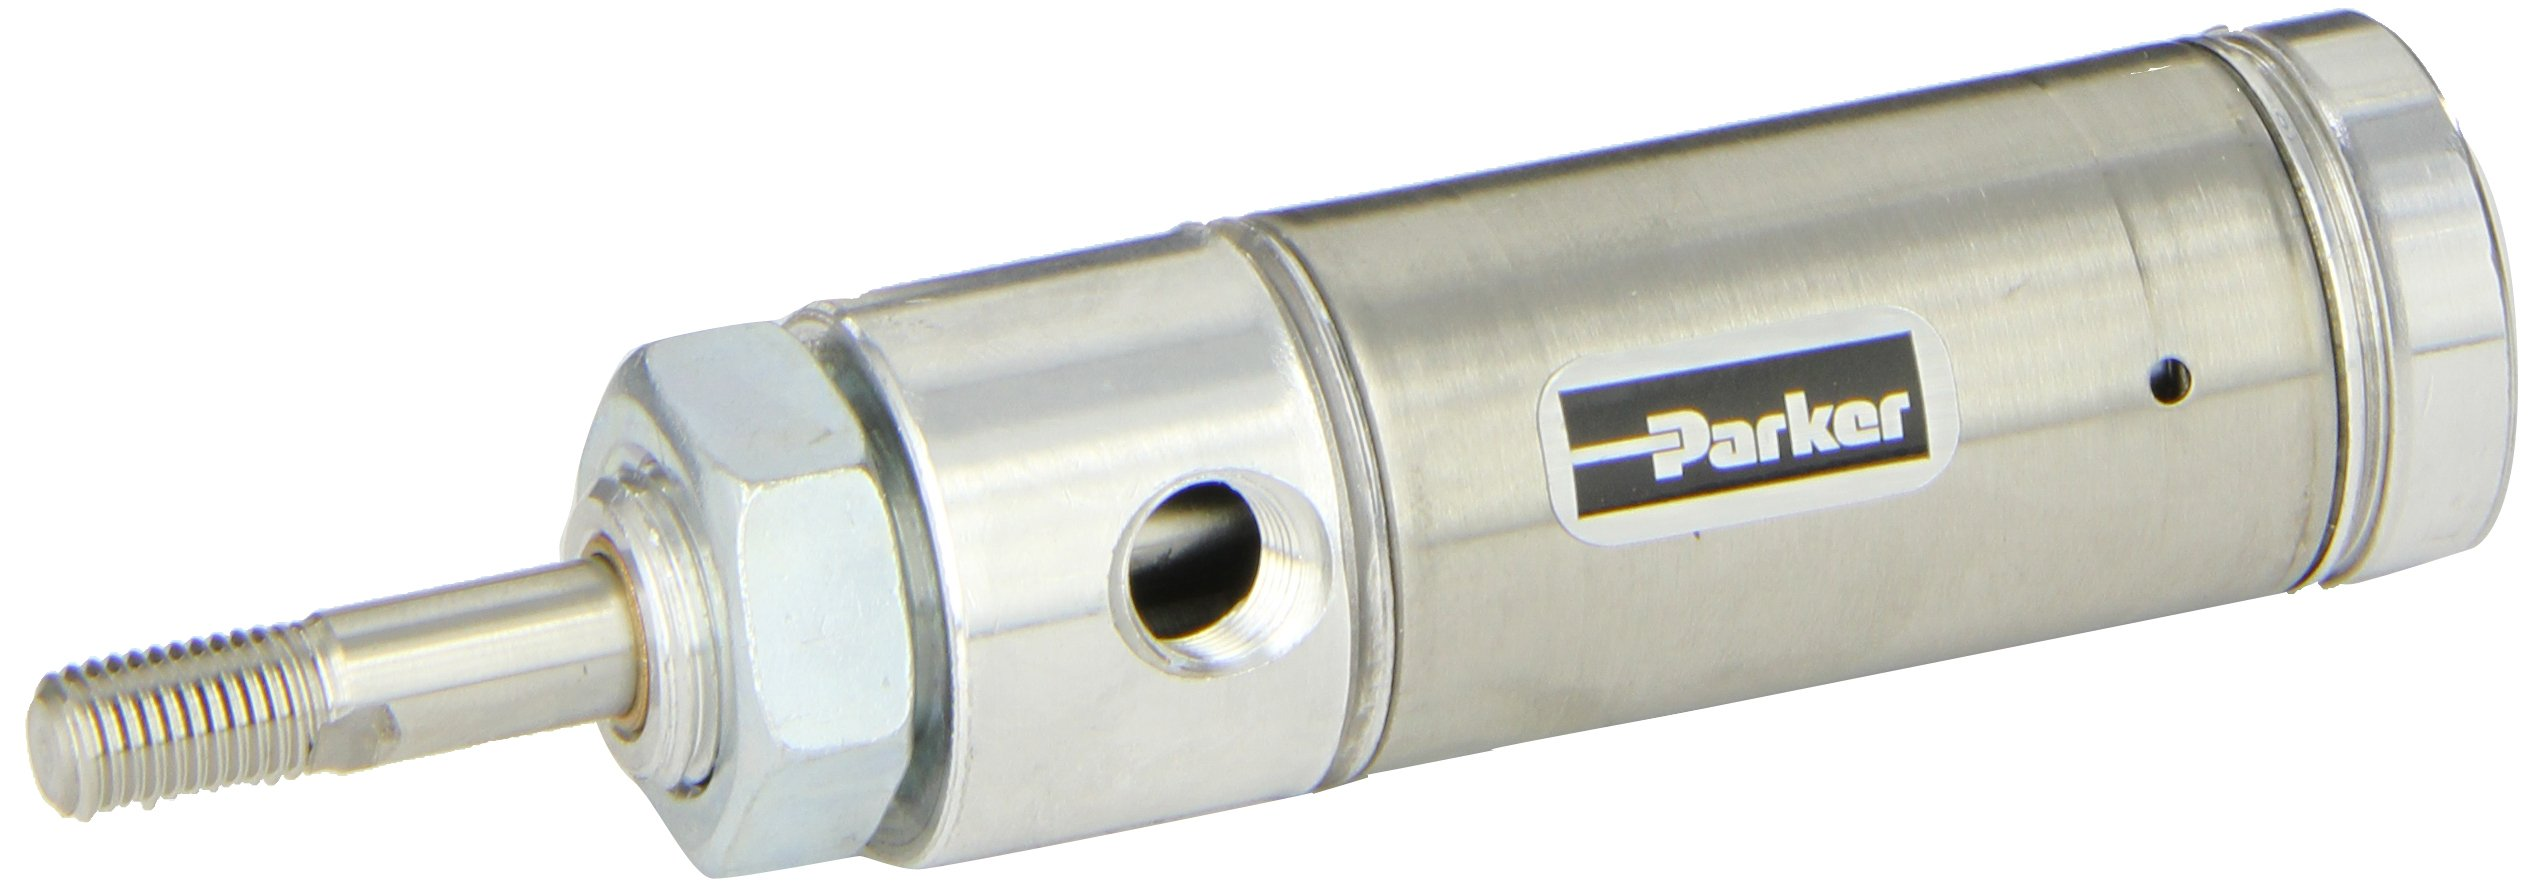 Parker 1.06RSR00.5 Stainless Steel 304 Air Cylinder, Round Body, Single Acting, Spring Extend, Nose Mount, Non-cushioned, 1-1/16 inches Bore, 1/2 inches Stroke, 5/16 inches Rod OD, 1/8'' NPT Port